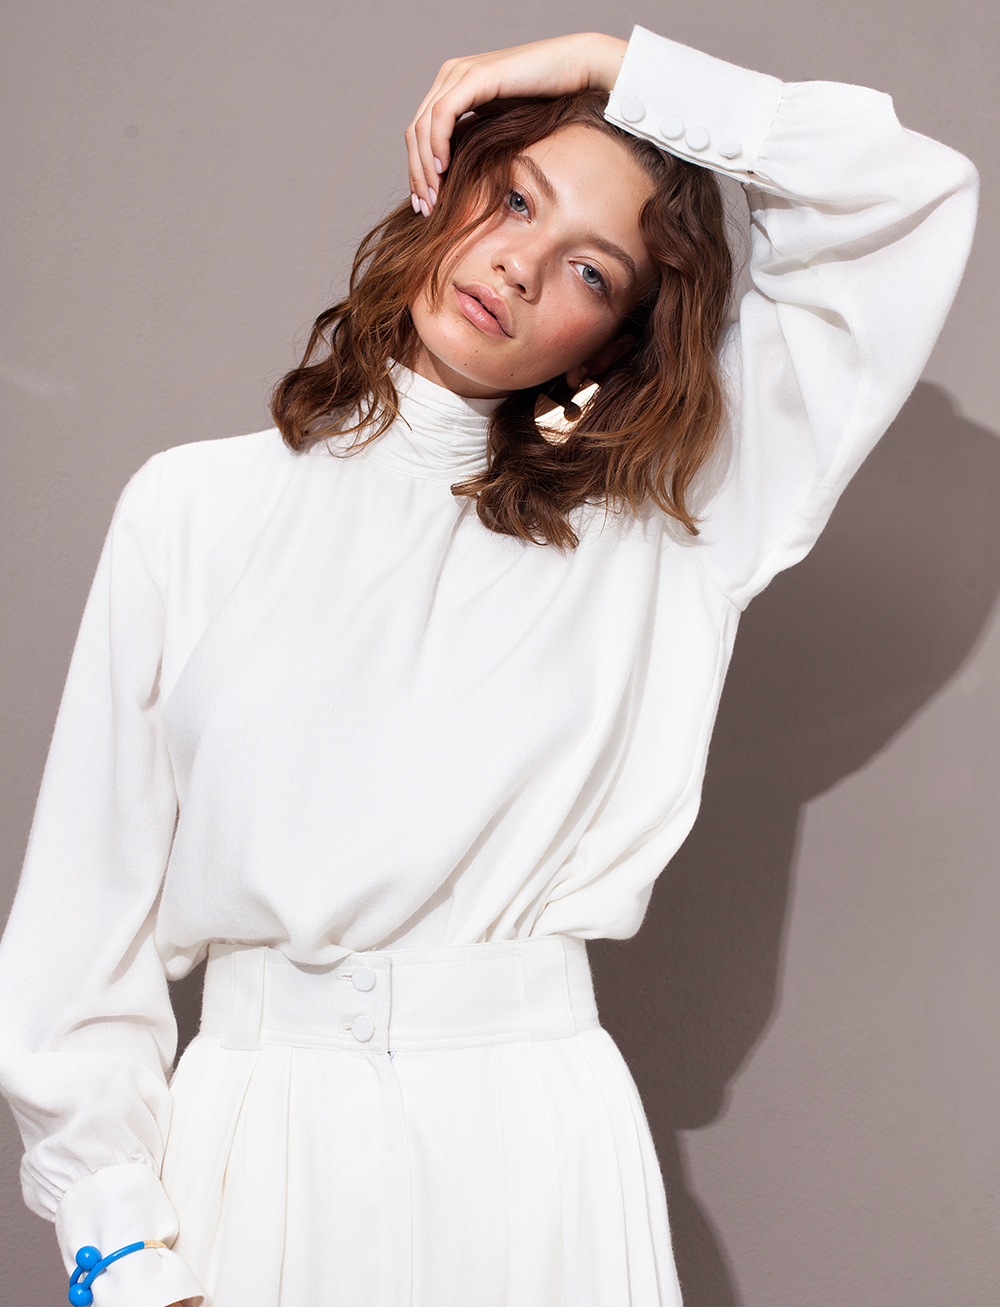 Kaleida Blouse - White by Manurí on curated-crowd.com